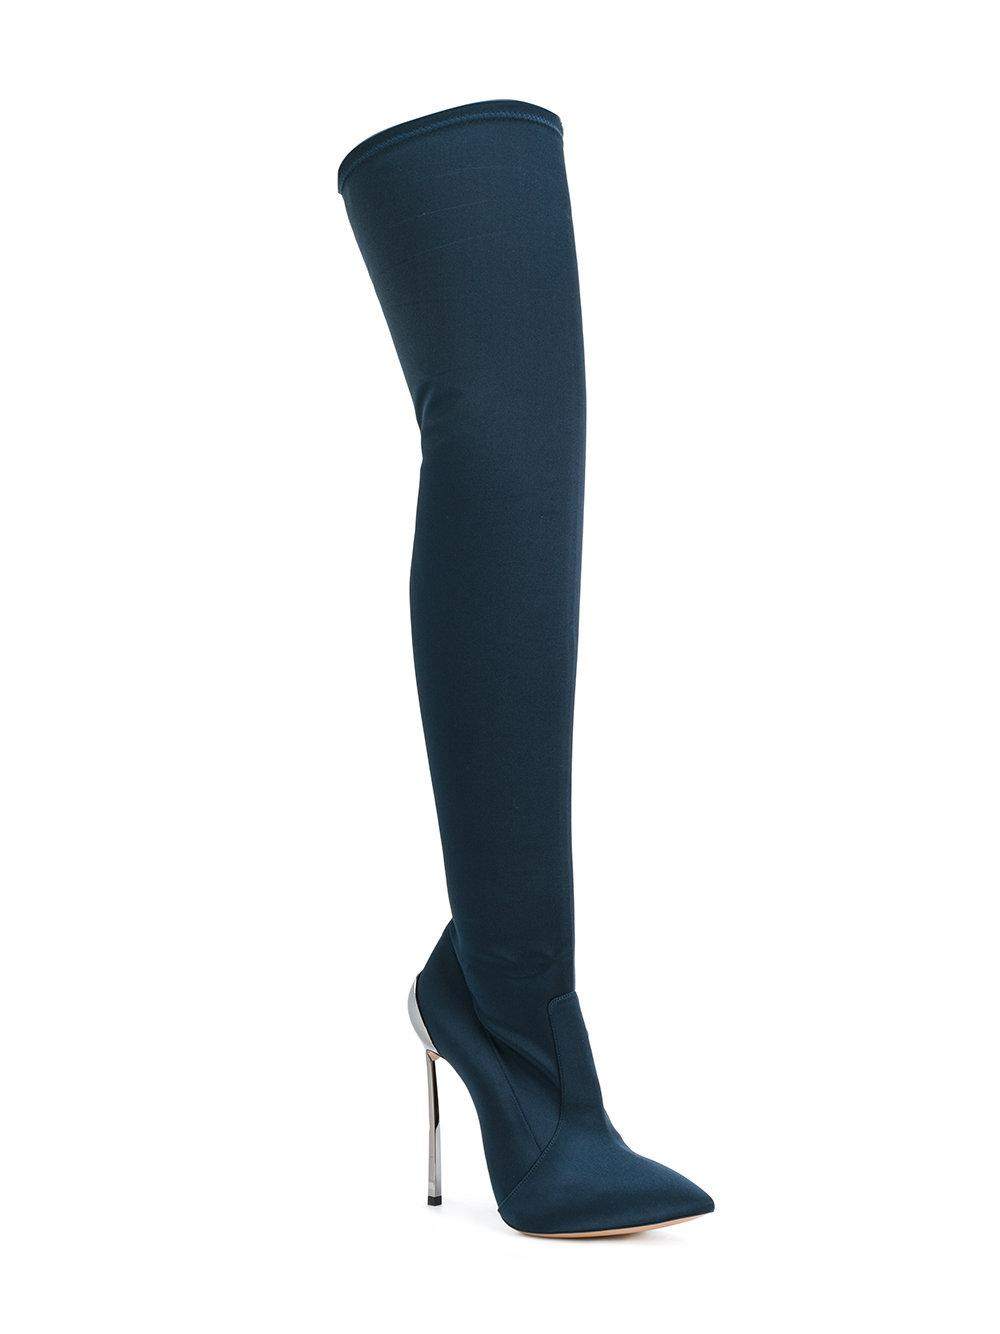 Casadei Silk Over-the-knee Techno Blade Boots in Blue